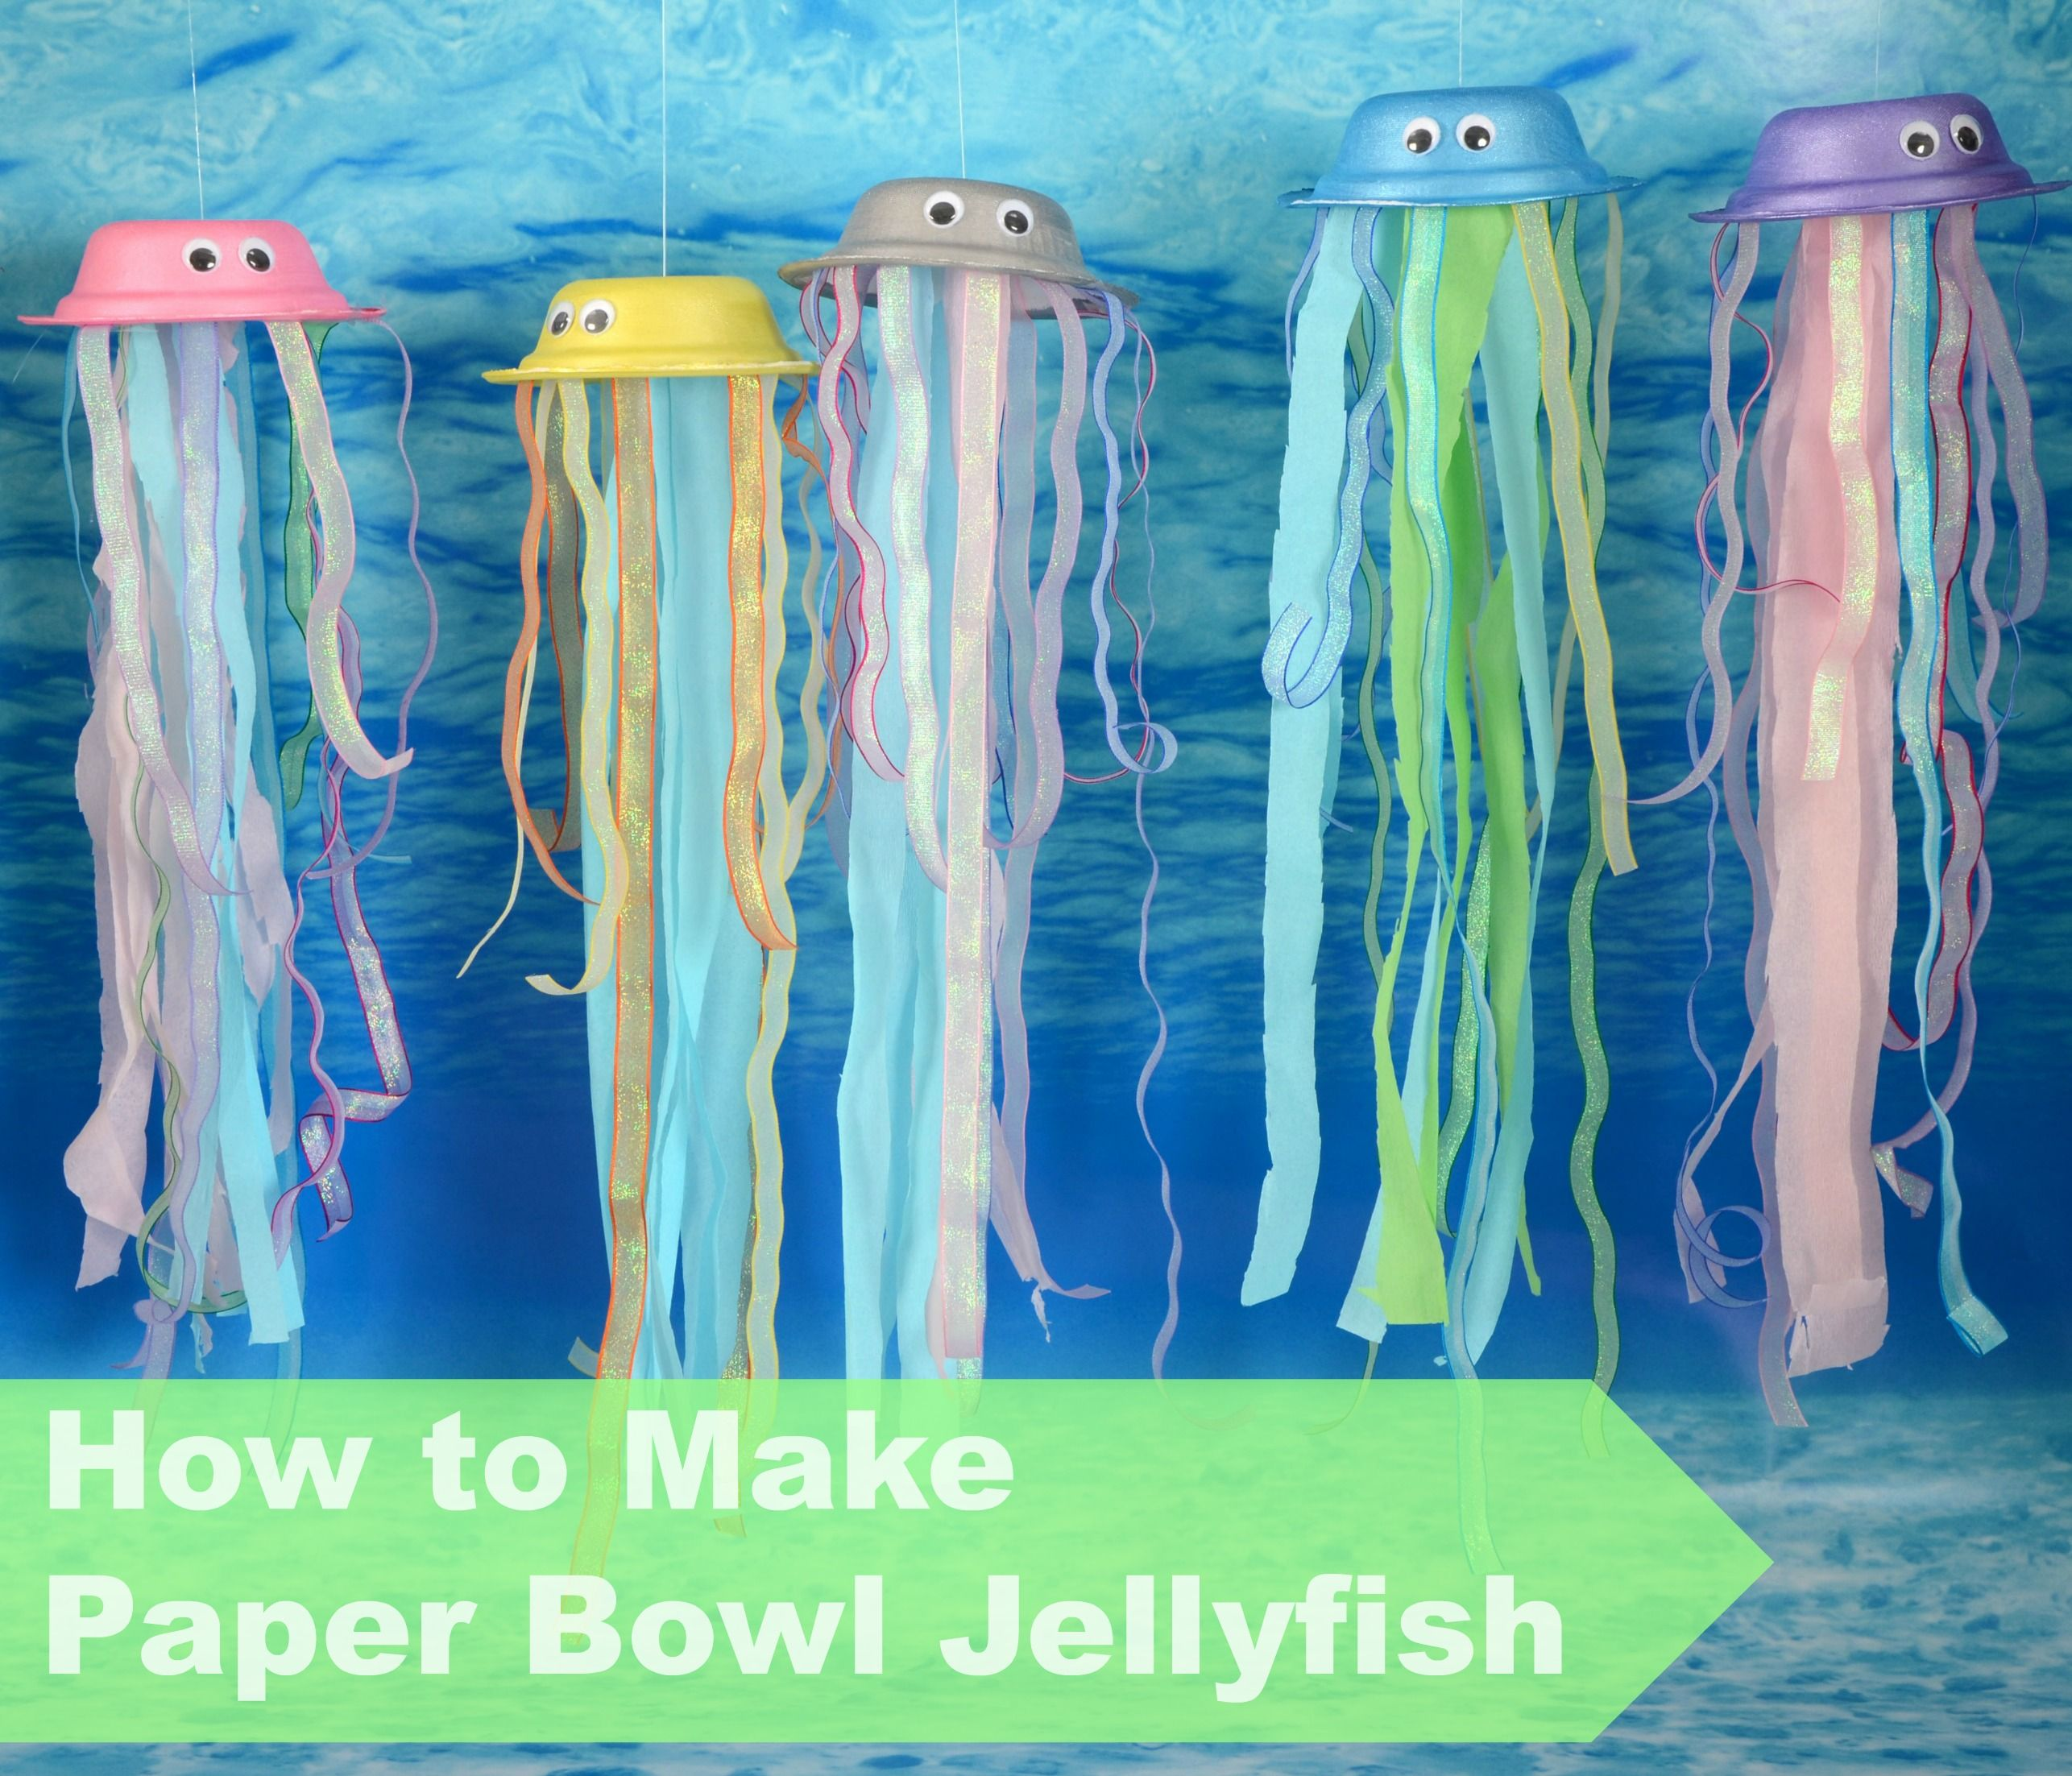 How to Make a Paper Bowl Jellyfish | Under the Sea Theme | Under the sea, Sea, Sea theme